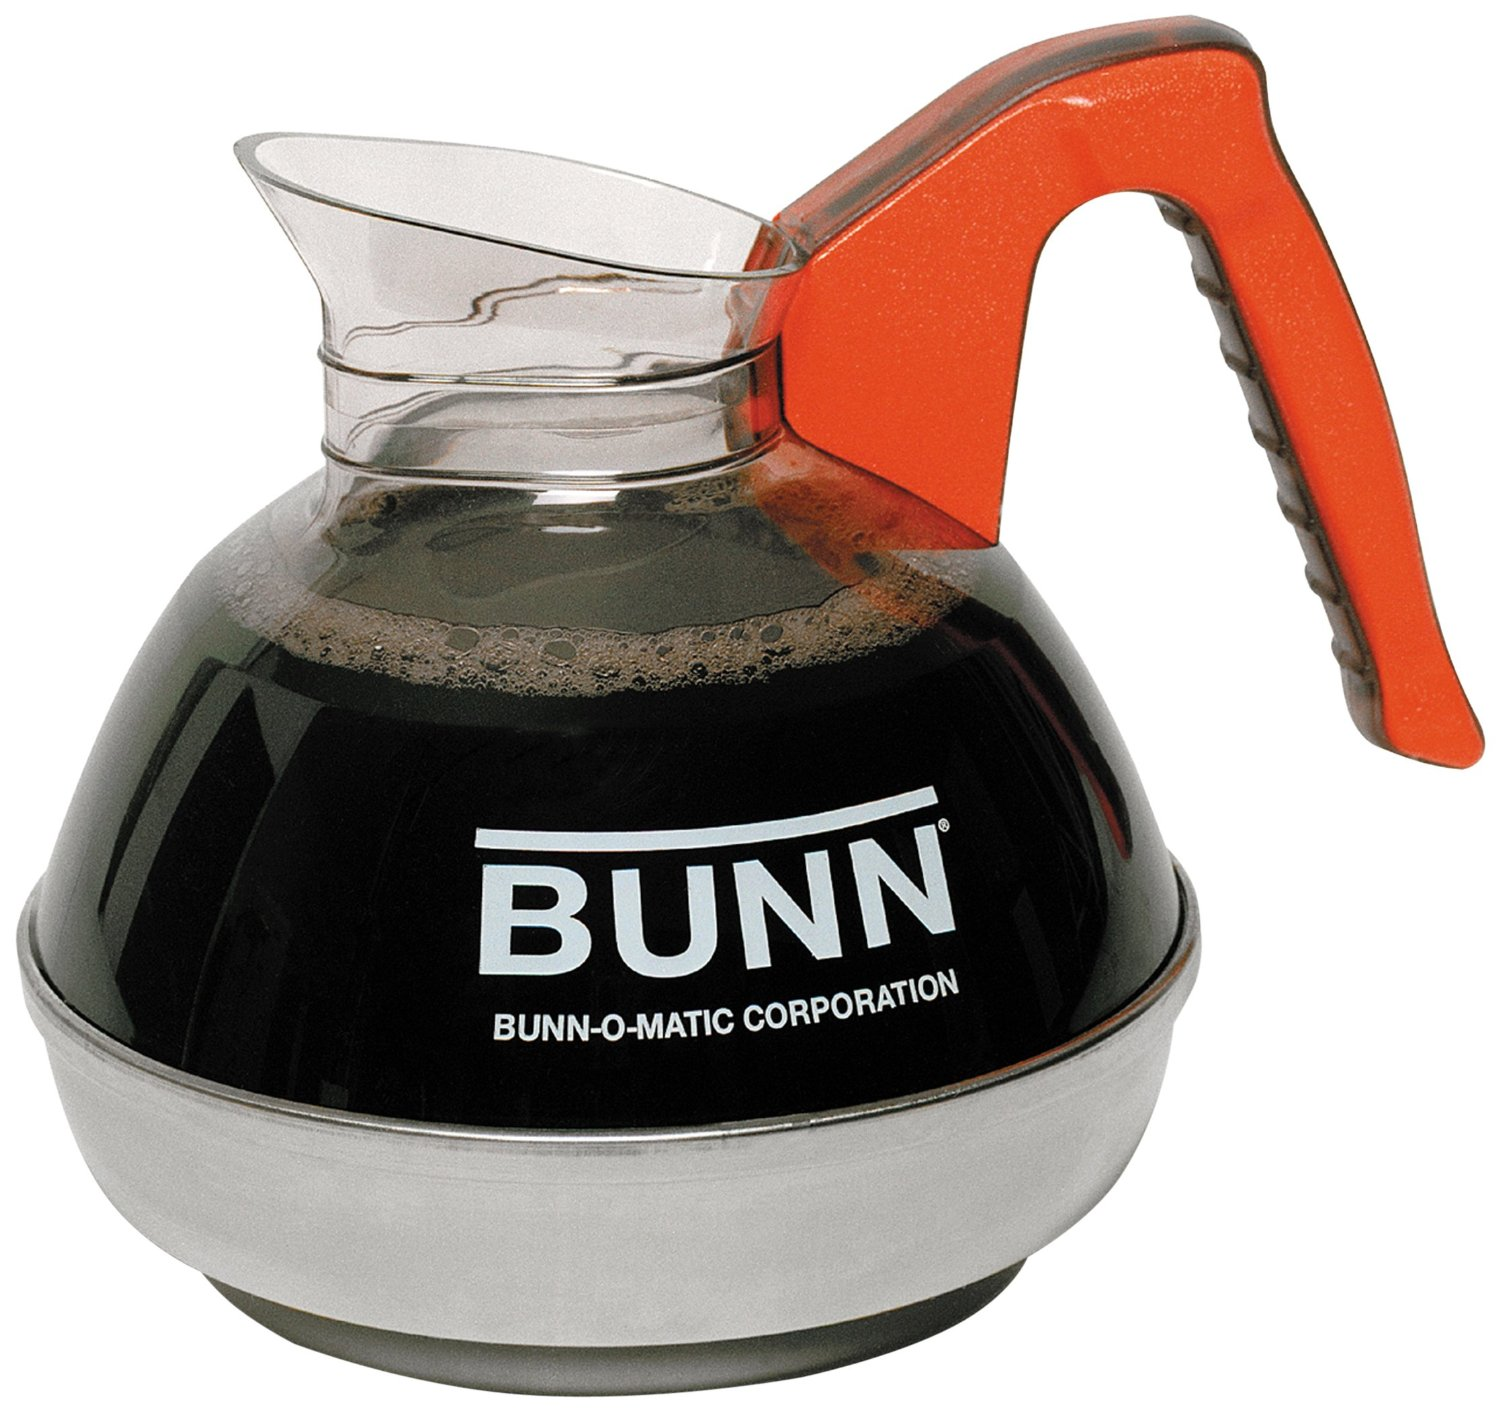 Bunn - 6101.0101 Easy Pour Commercial 12-Cup Decaf Coffee Decanter, Orange